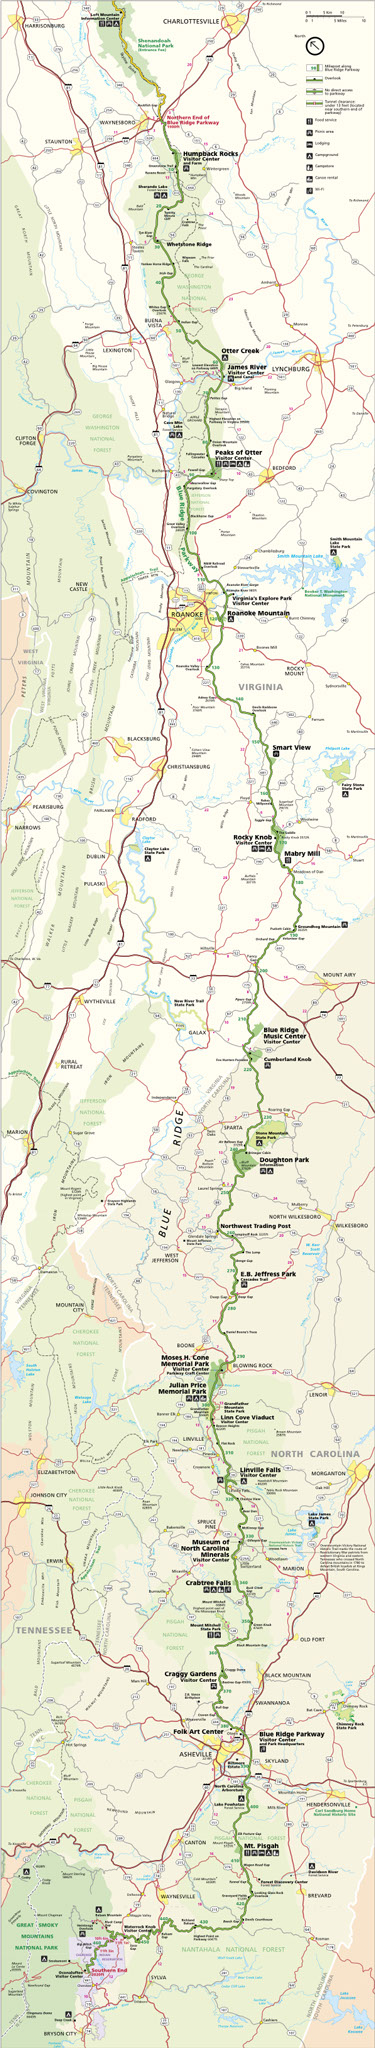 Planning Your Parkway Visit